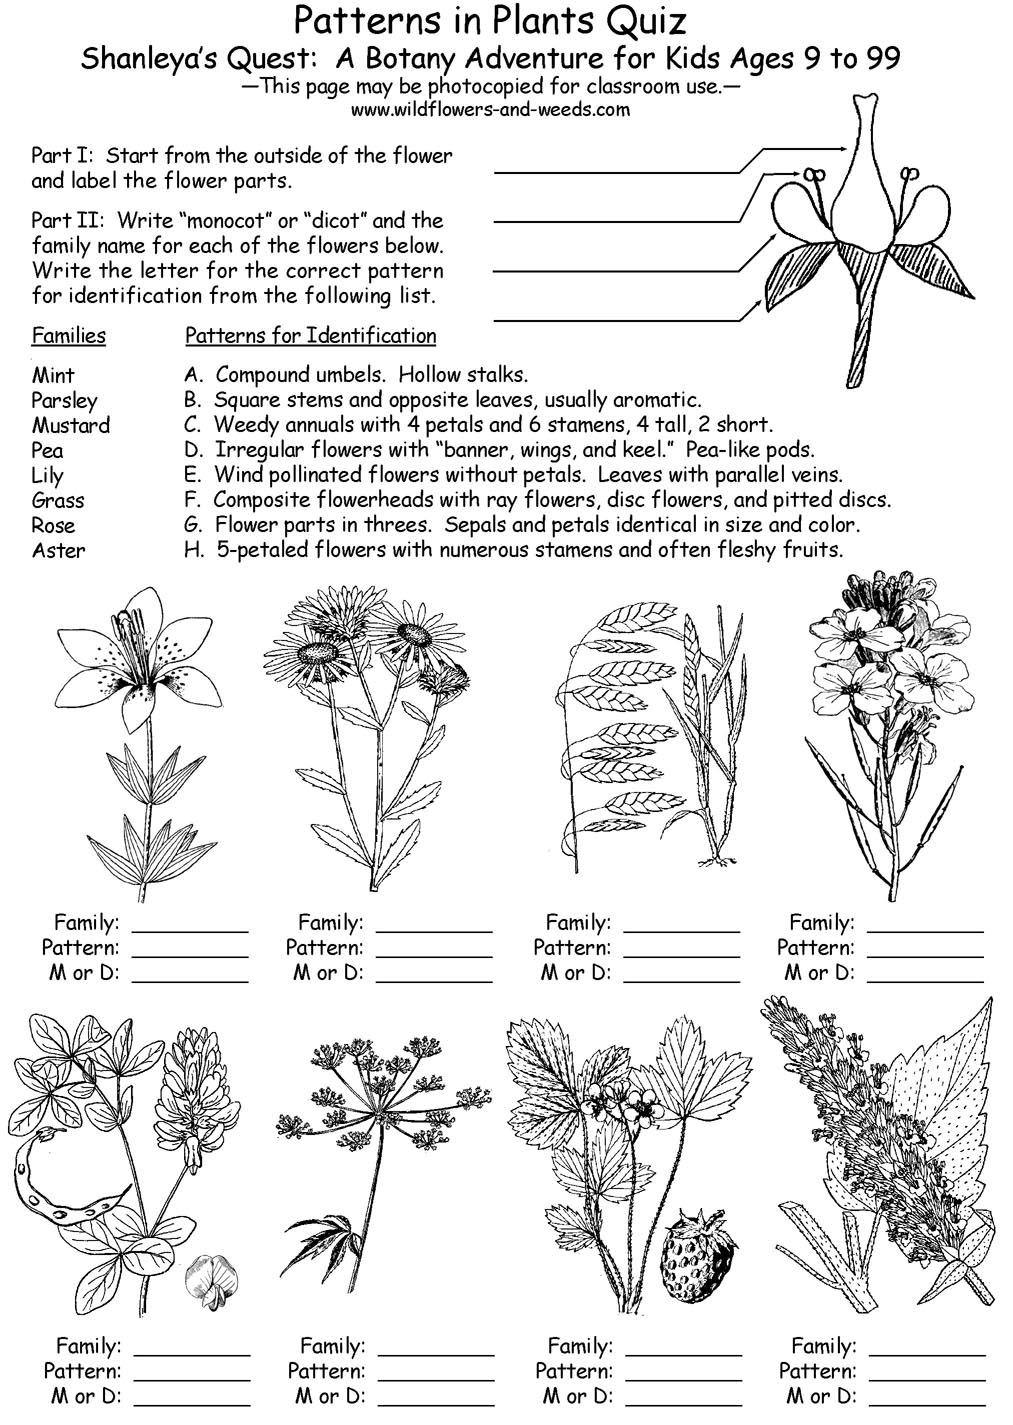 Test Yourself Print Out Shanleya S Plant Patterns Quiz